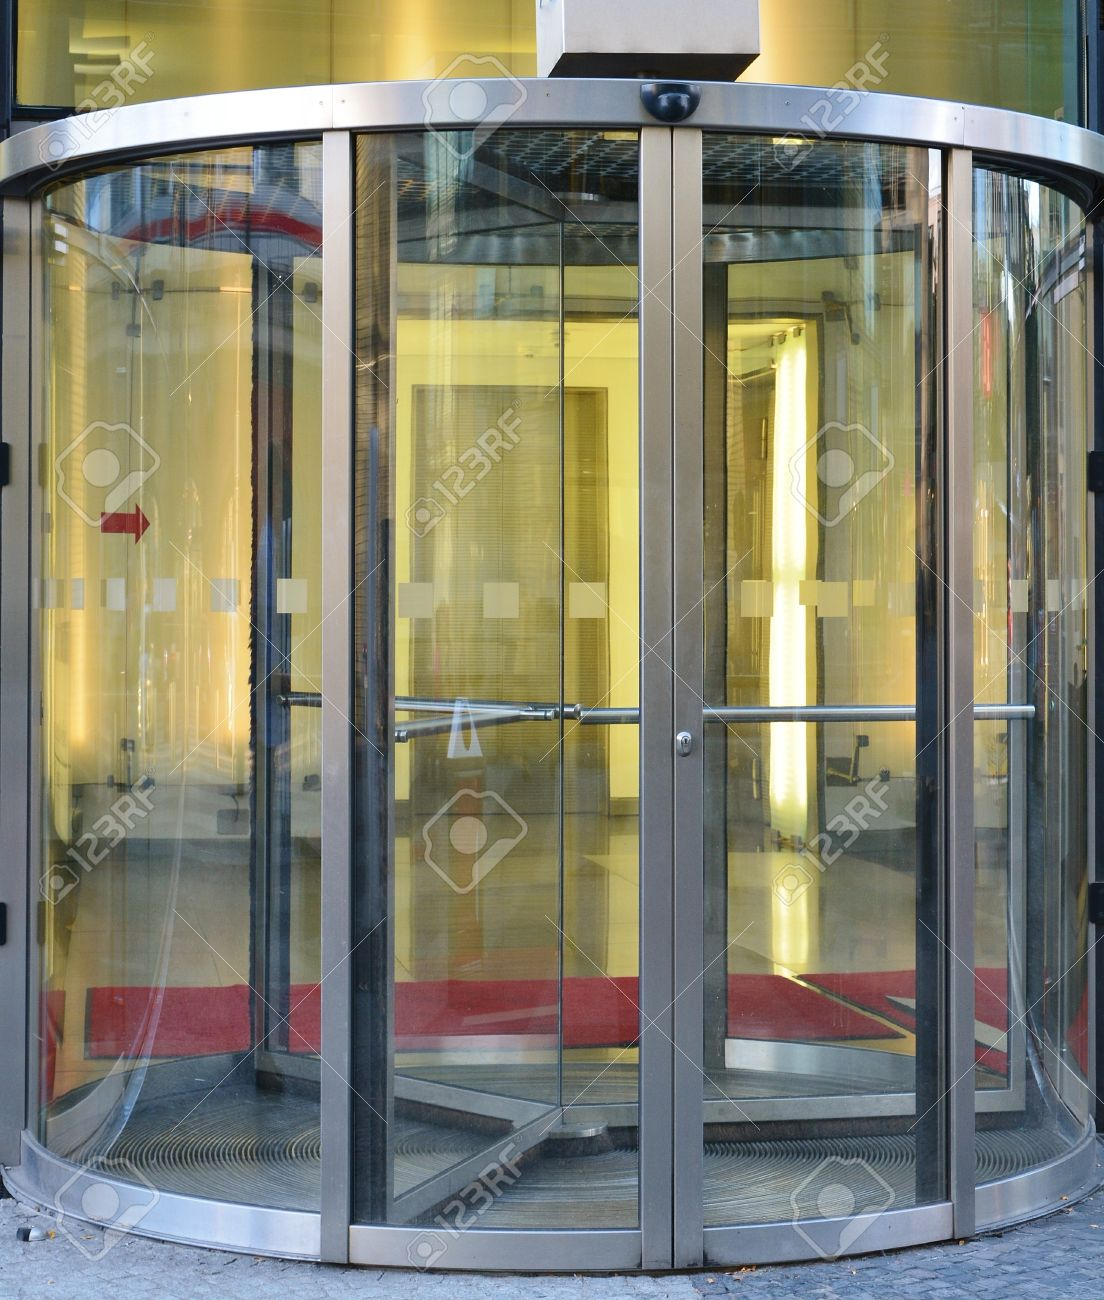 Modern revolving door as entrance to office building or hotel Stock Photo & Rotating Door Stock Photos. Royalty Free Business Images